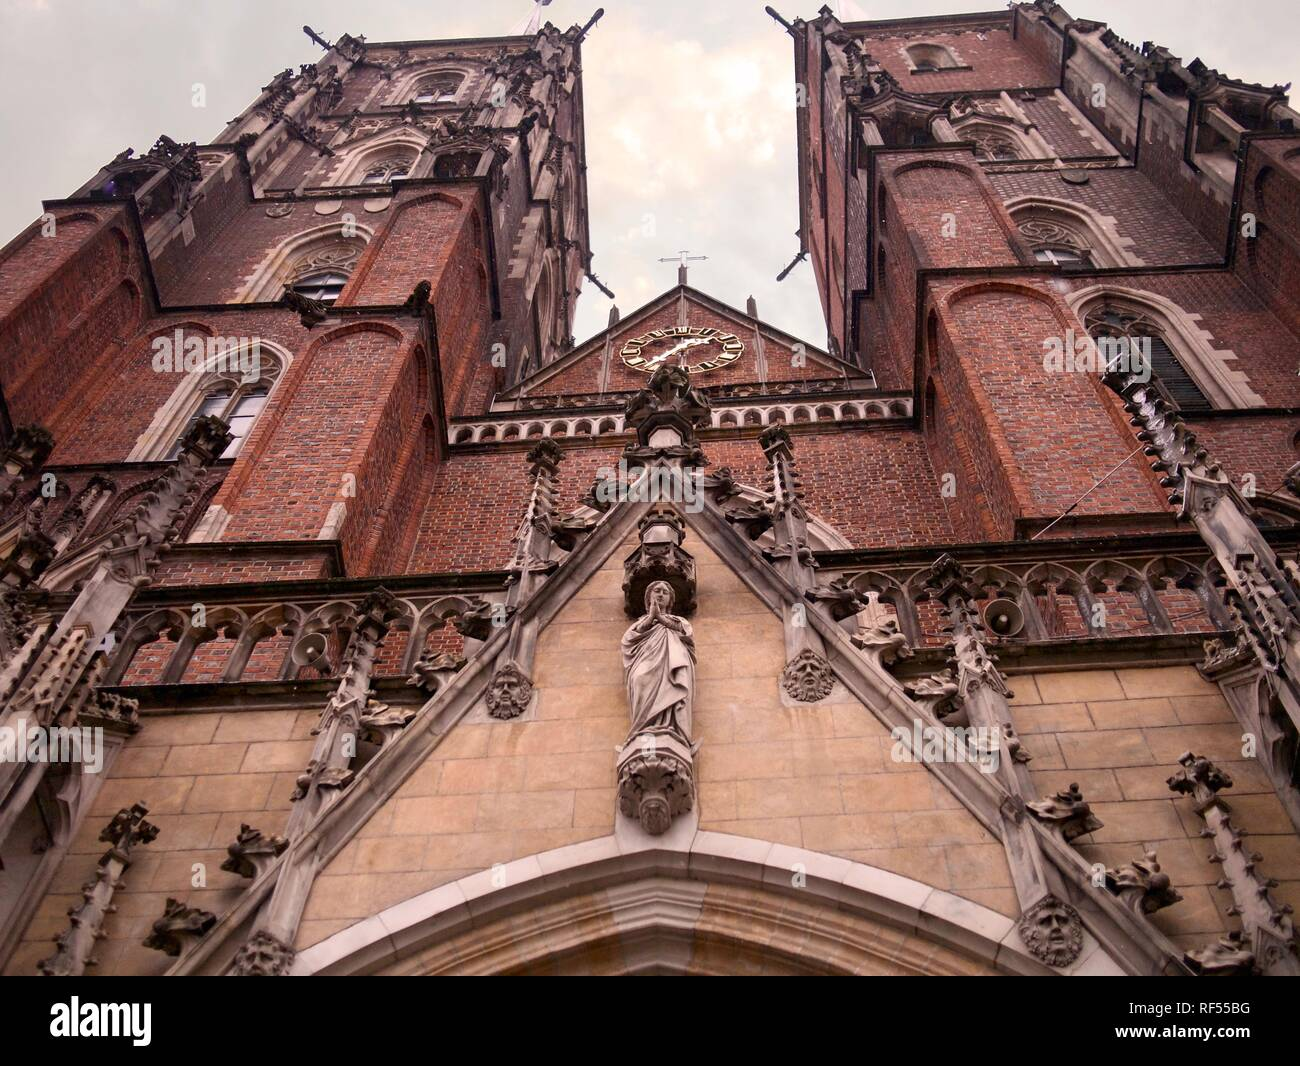 St. John the Baptist Cathedral in Ostrow Tumski, Wroclaw, Poland Stock Photo